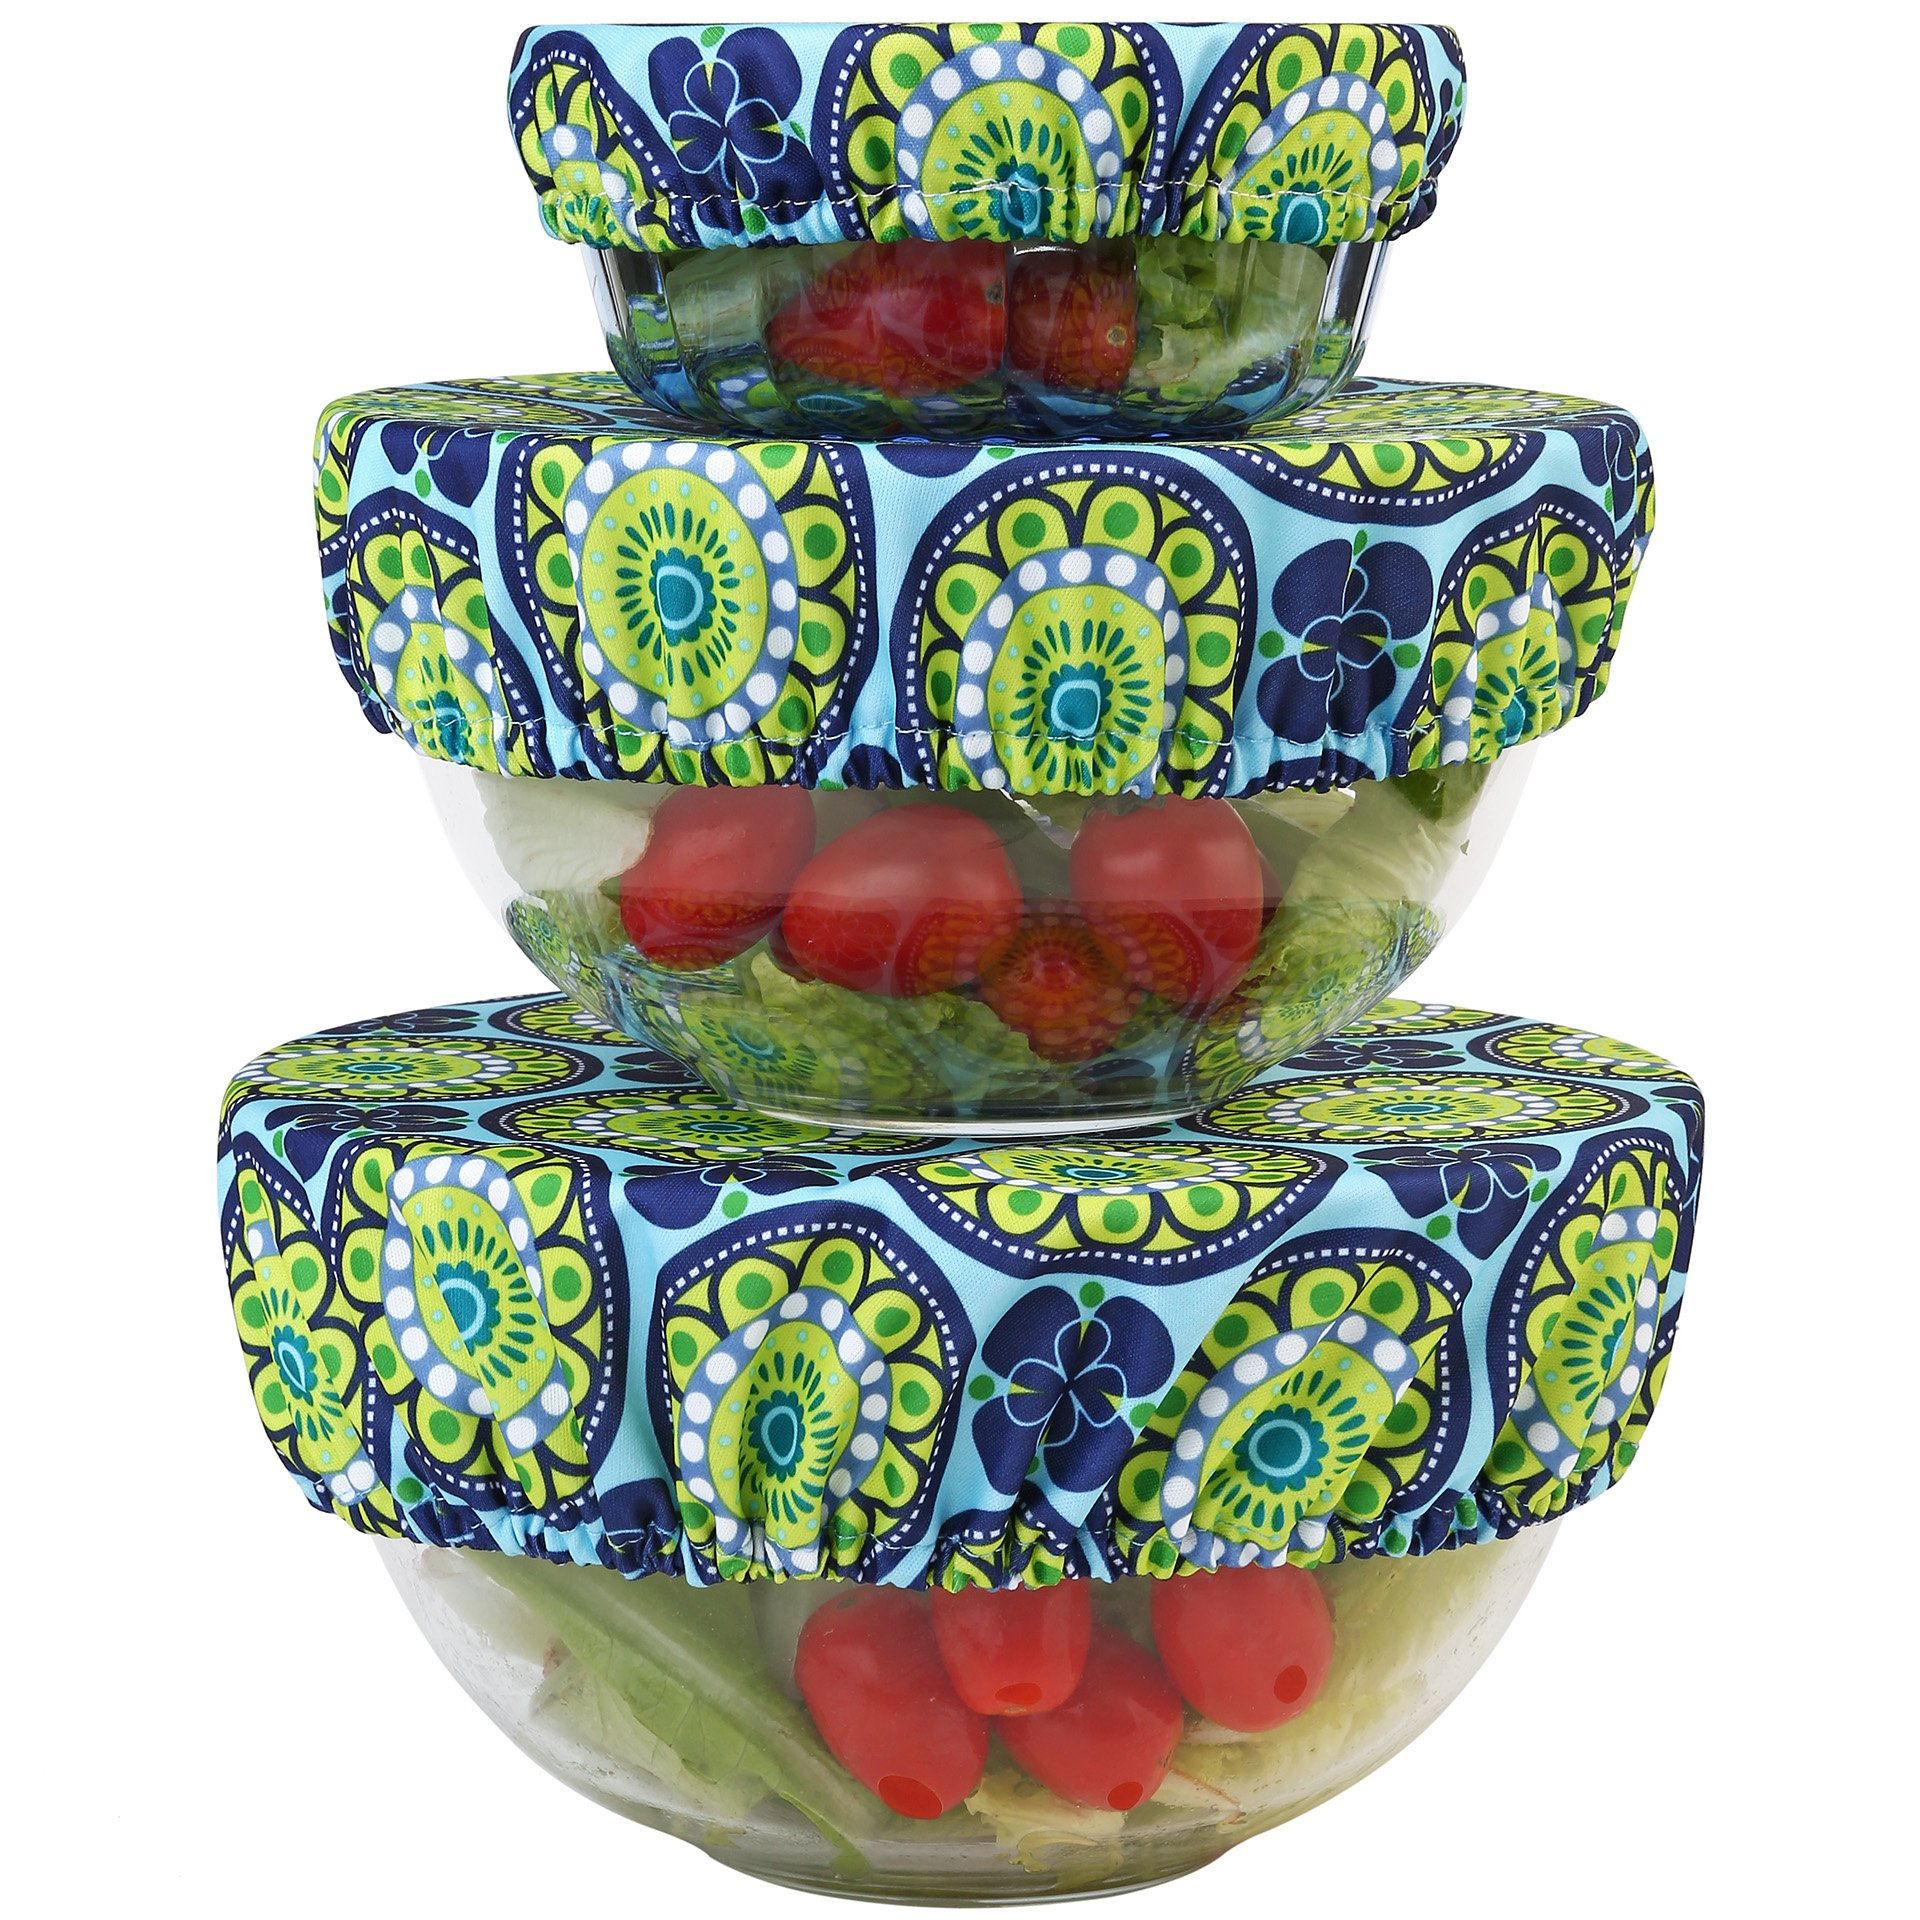 Wegreeco Reusable Bowl Covers - Set of 3,Funky Flower